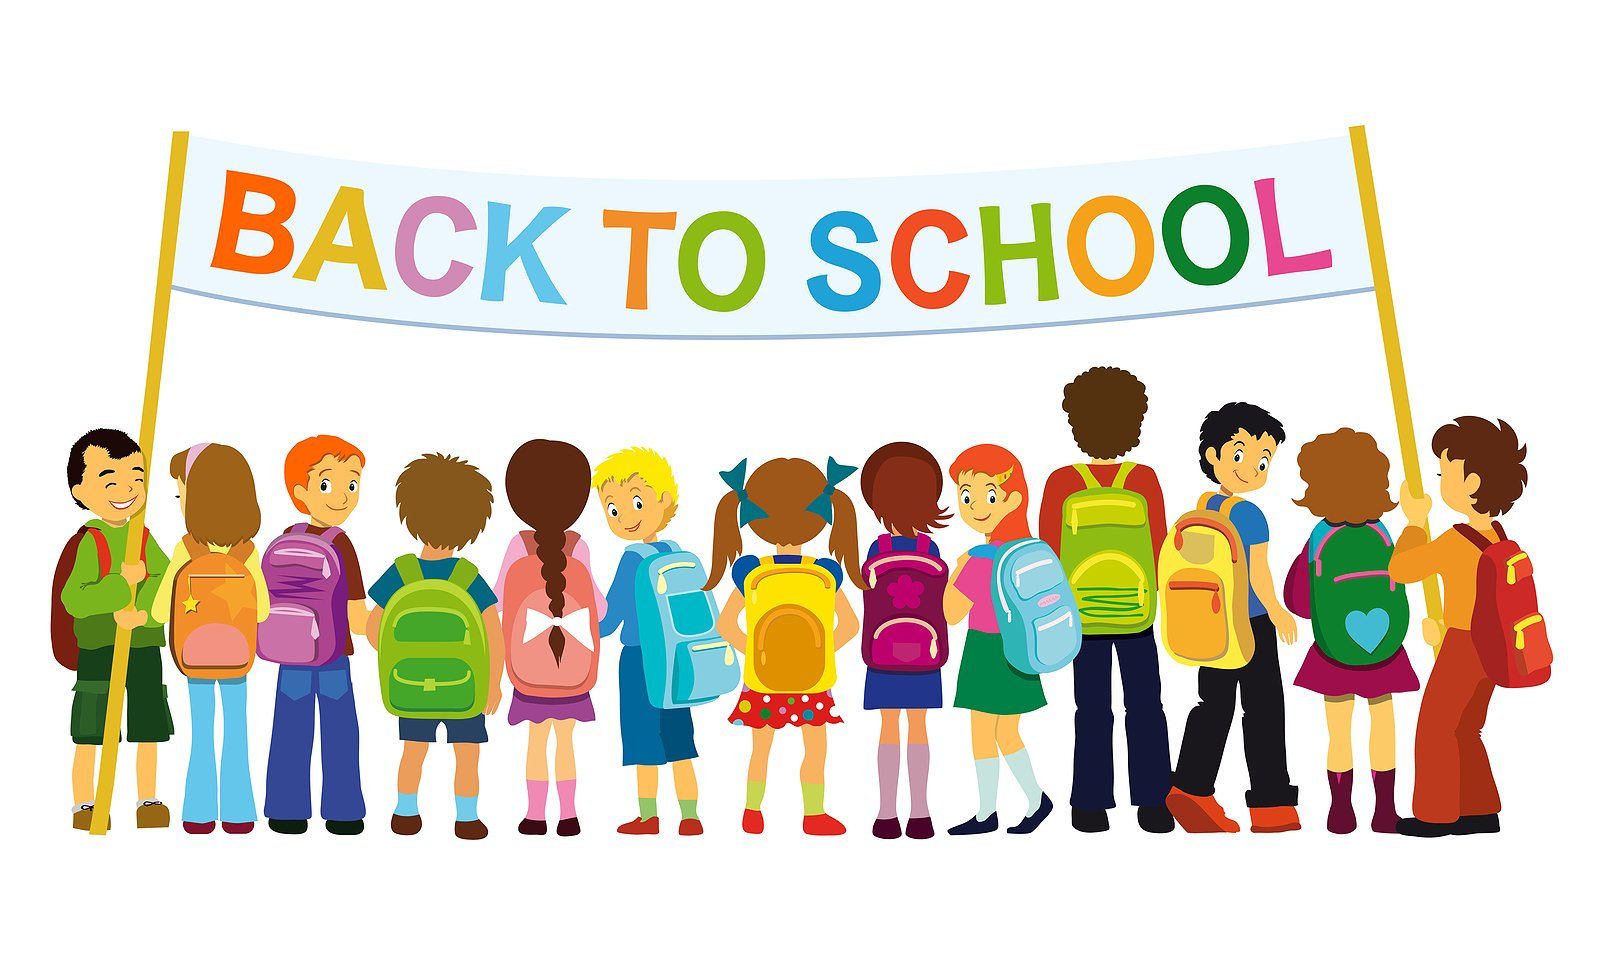 Back to School clipart ~ 28 July 2017